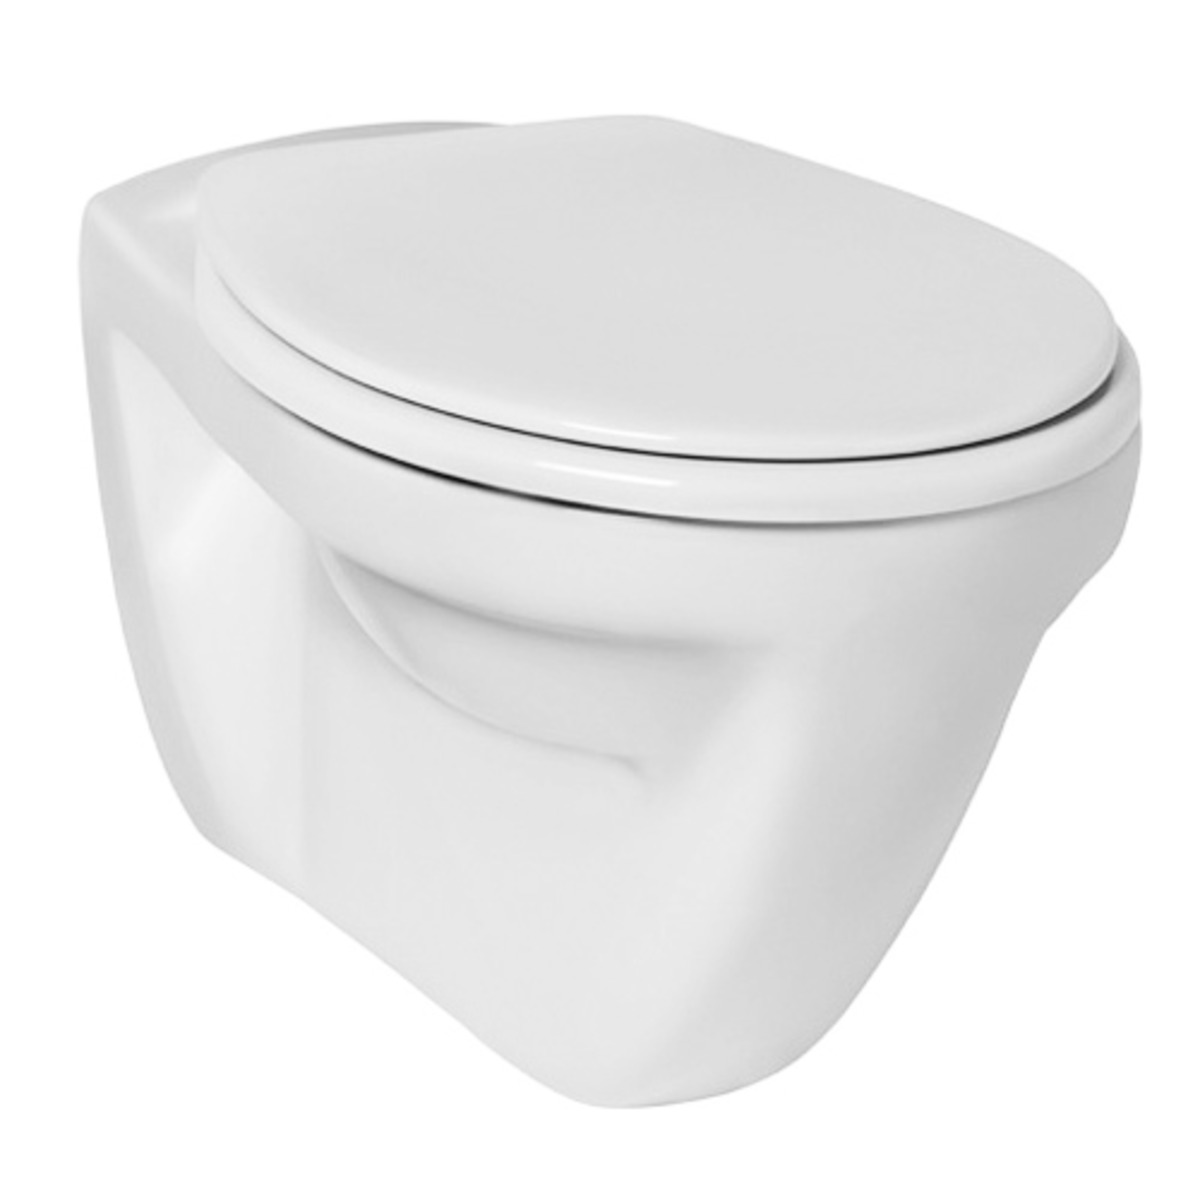 Ideal Standard Toilette Wc Ideal Standard Idealsoft Stunning